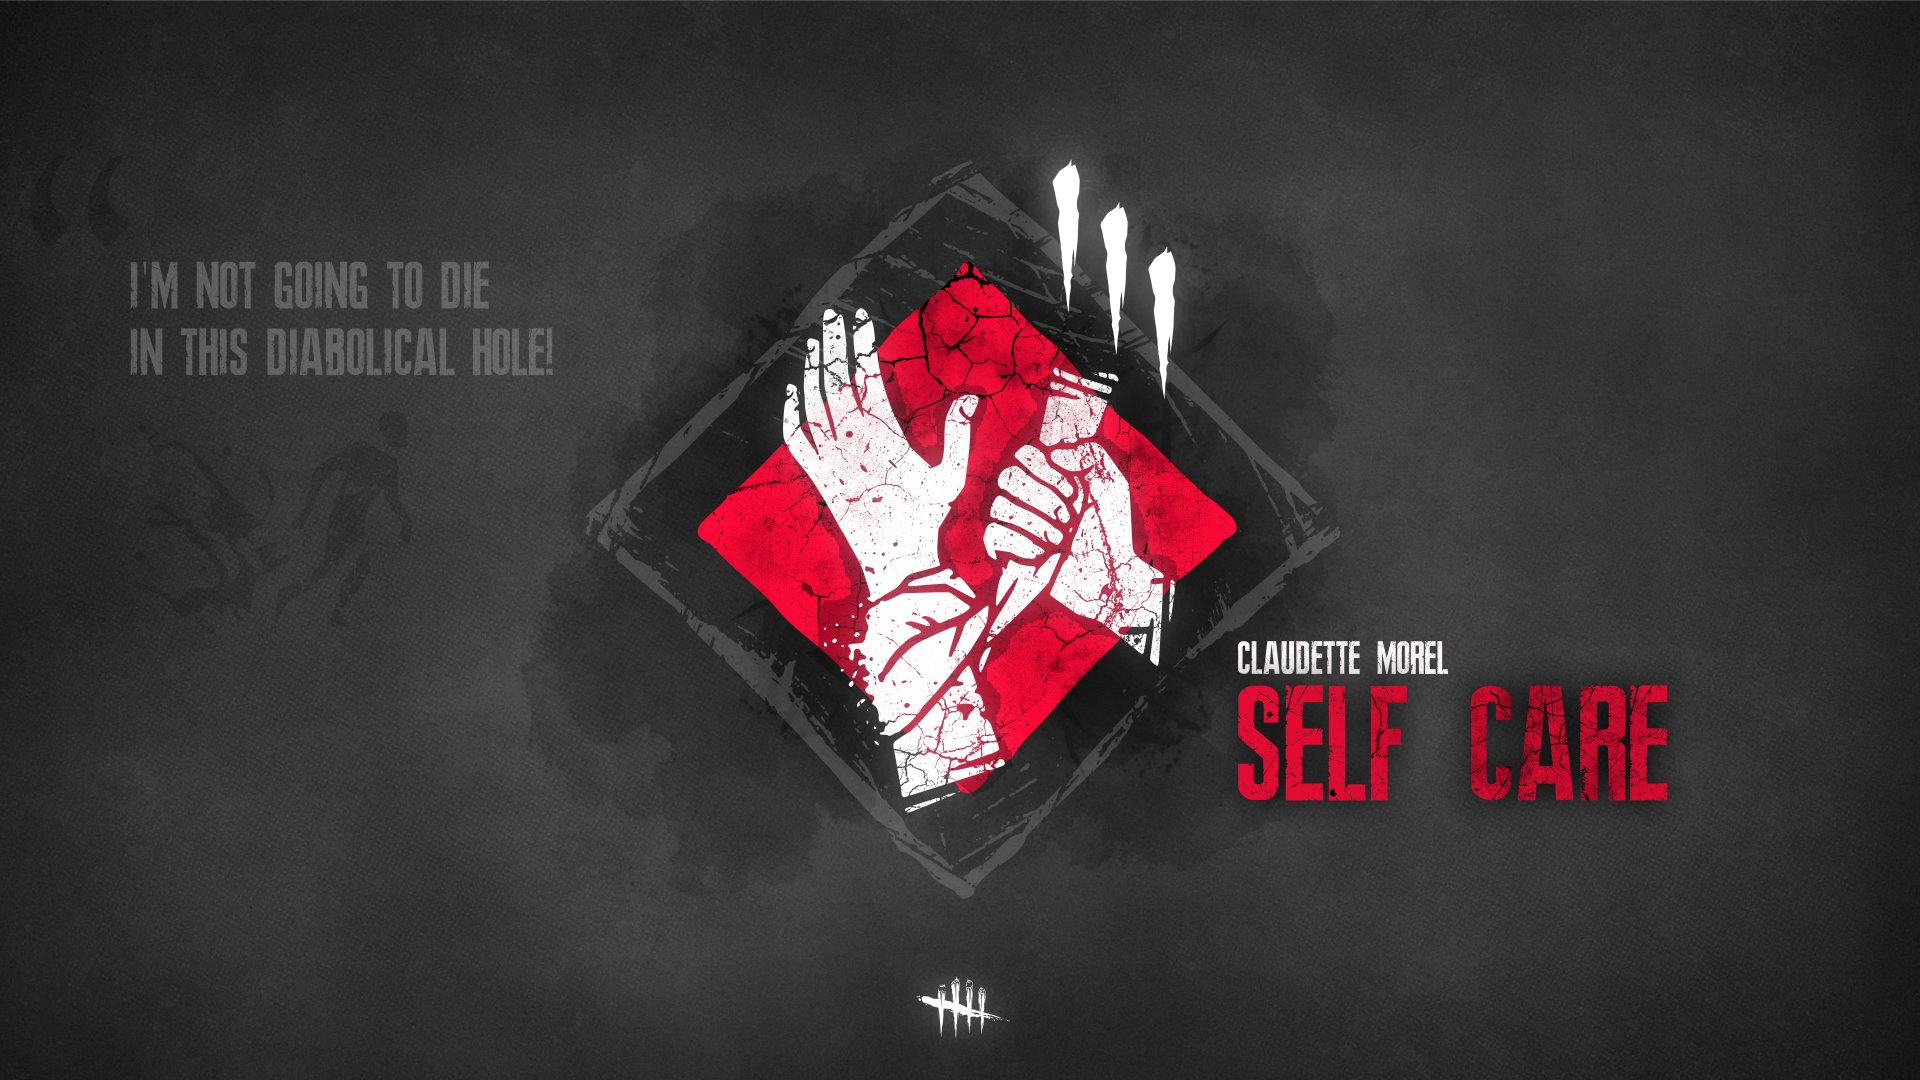 Video Game - Dead by Daylight  Self Care (Dead by Daylight) Claudette Morel (Dead by Daylight) Minimalist Wallpaper